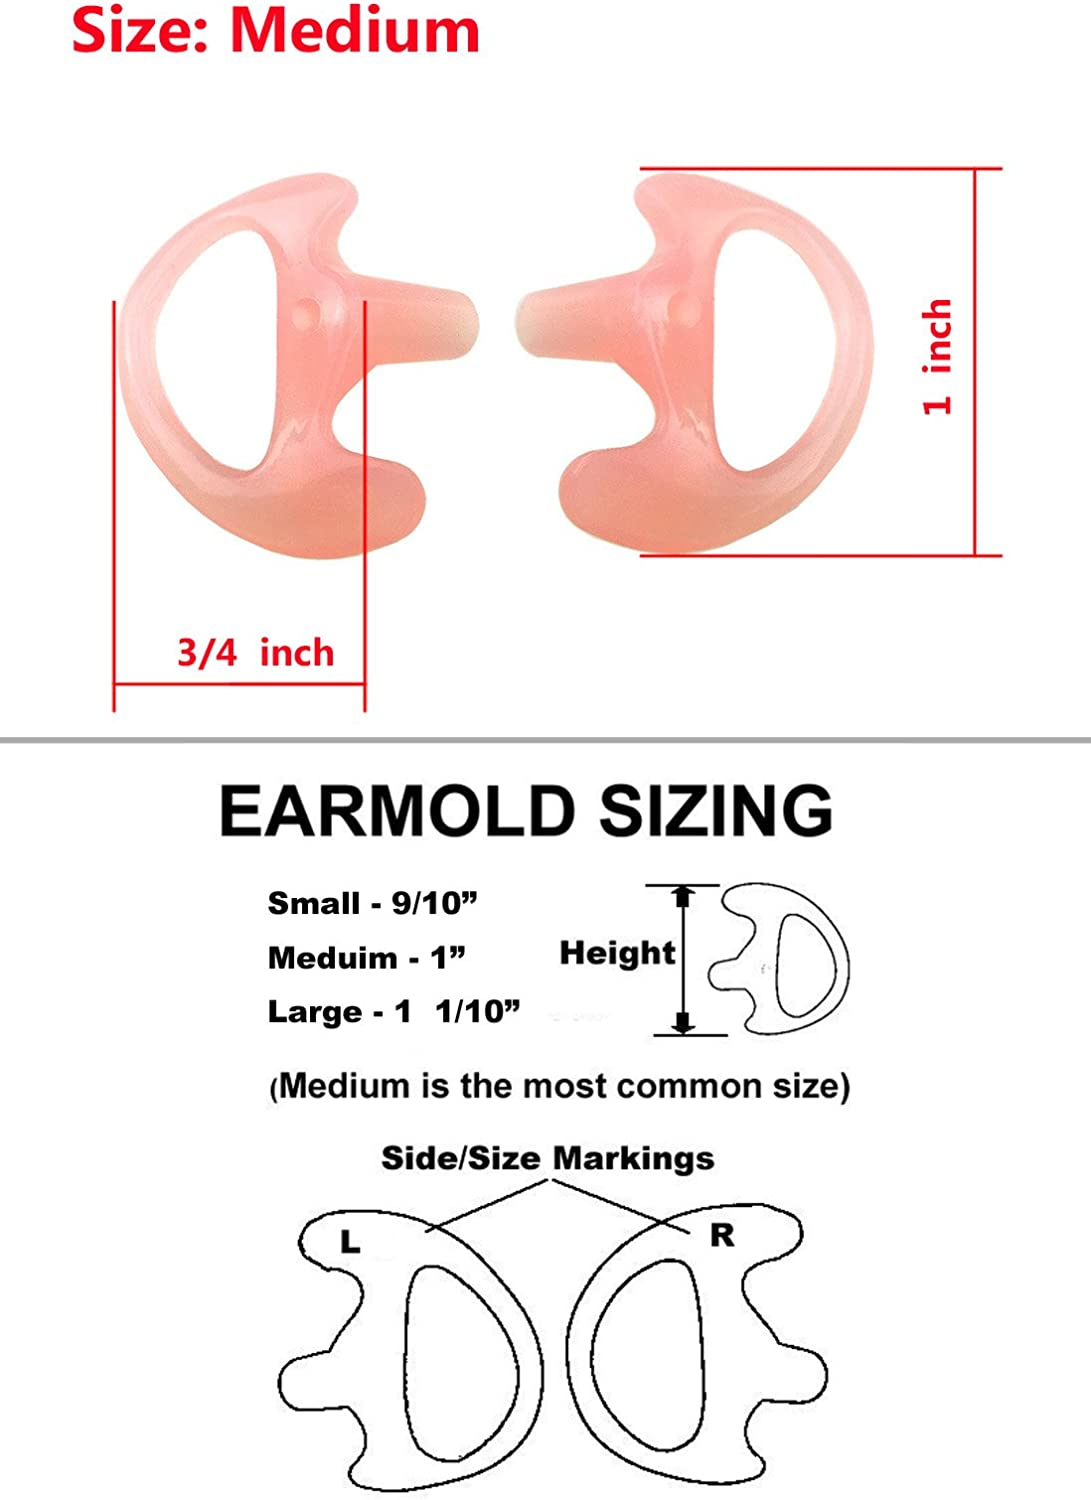 Xfox EM0301 Large Silicone Earmold Earbud One Pair Left//Right Large, Fleshcolor, 1 Pair for All Two-Way Walkie Talkie Radio Air Acoustic Coil Tube Earpiece Headphone Accessories Kits